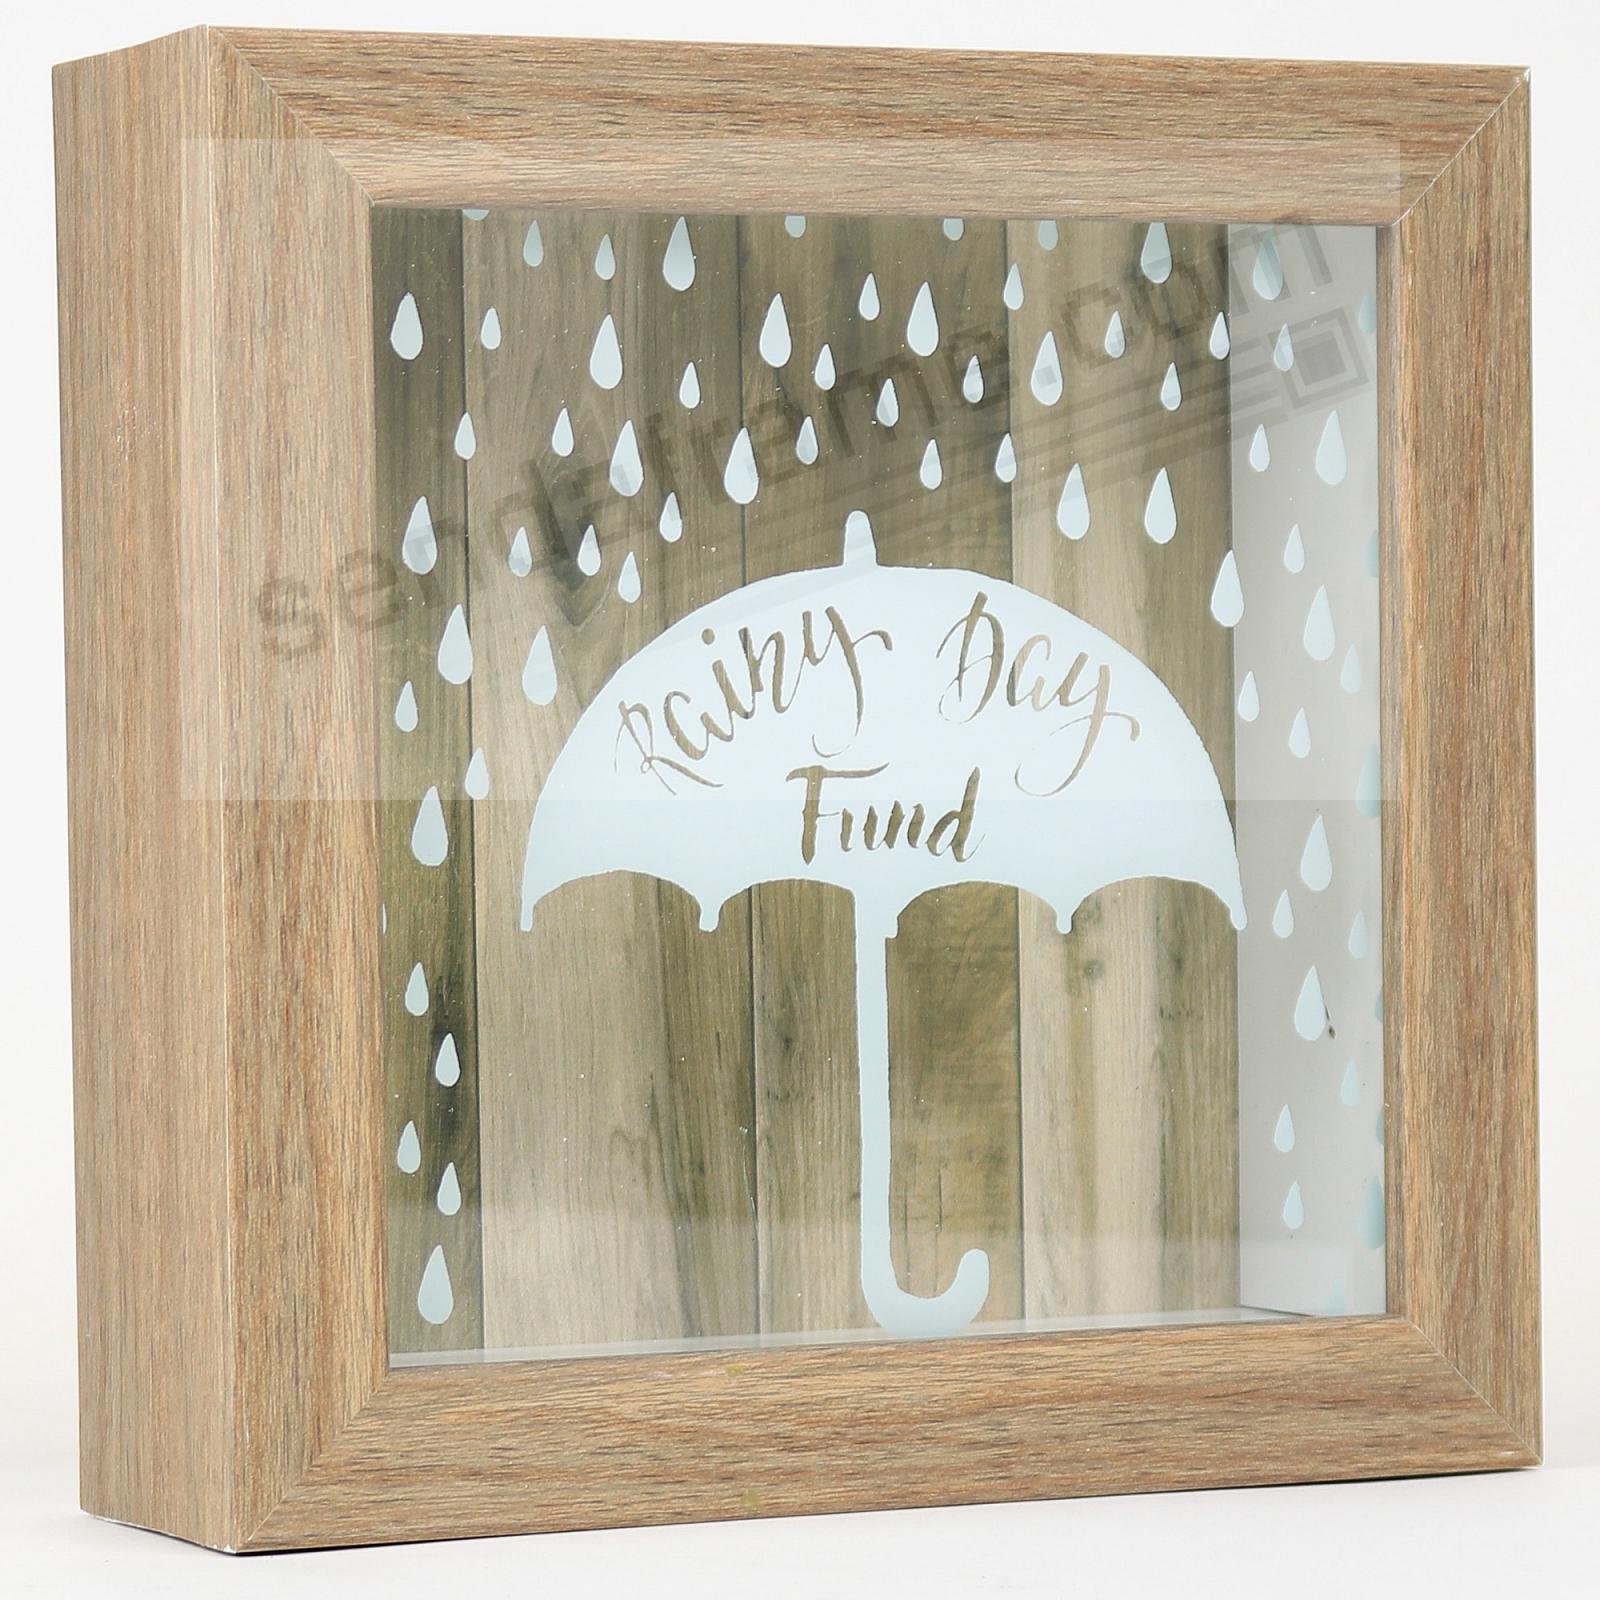 RAINY DAY FUND ShadowBox Bank frame by Lawrence®